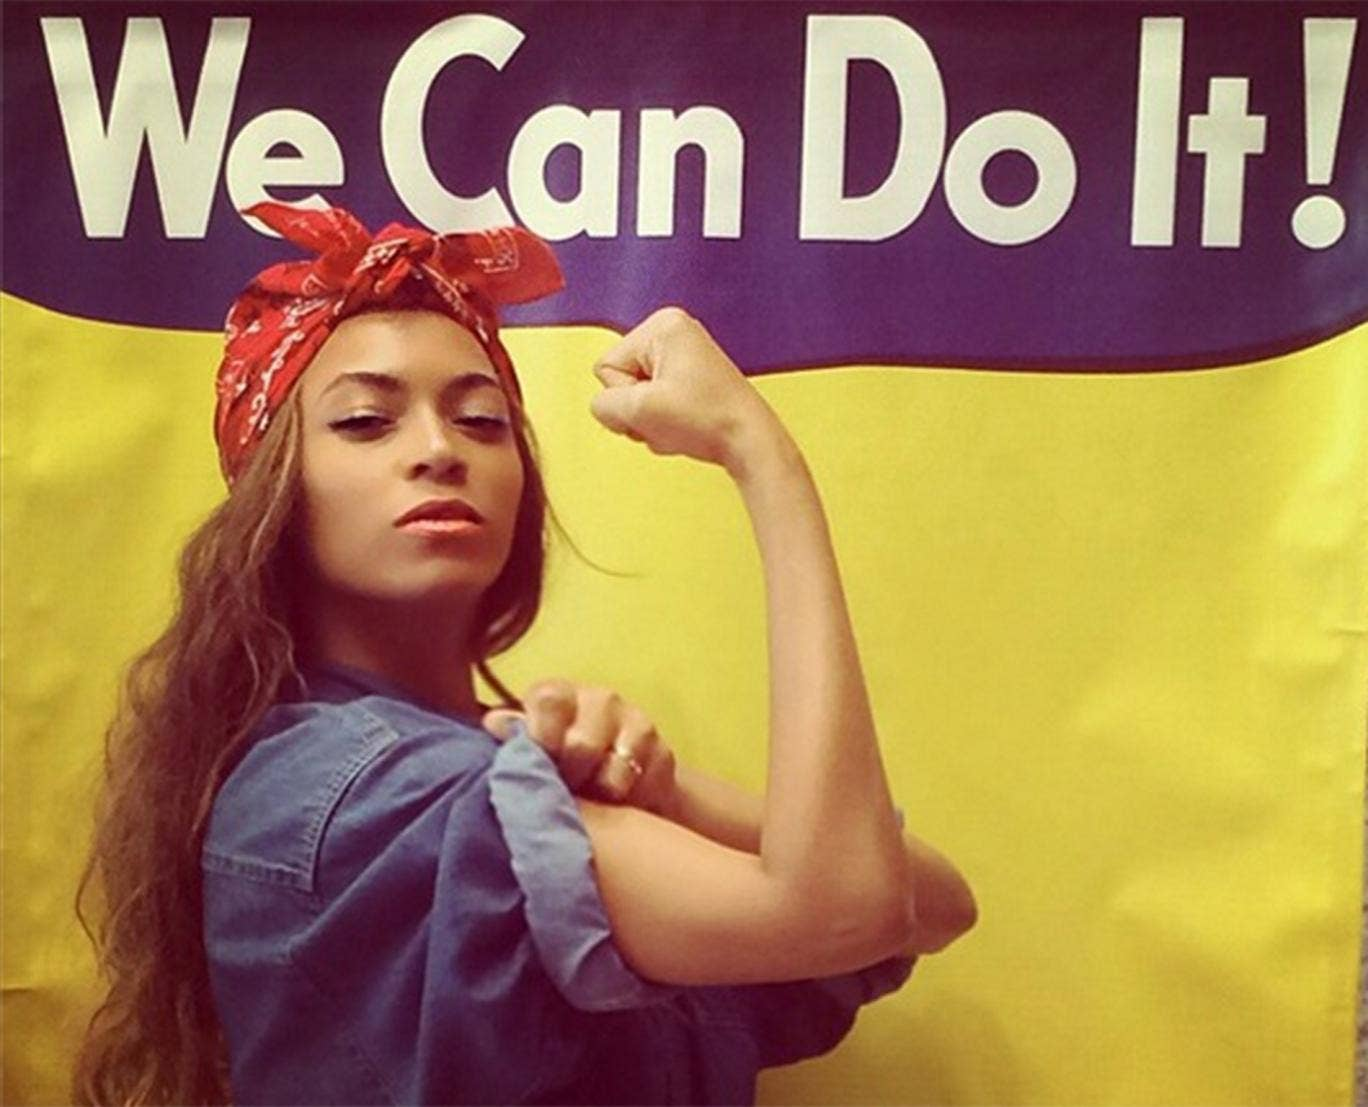 Bey can do it: Beyoncé re-enacts Rosie the Riveter's pose